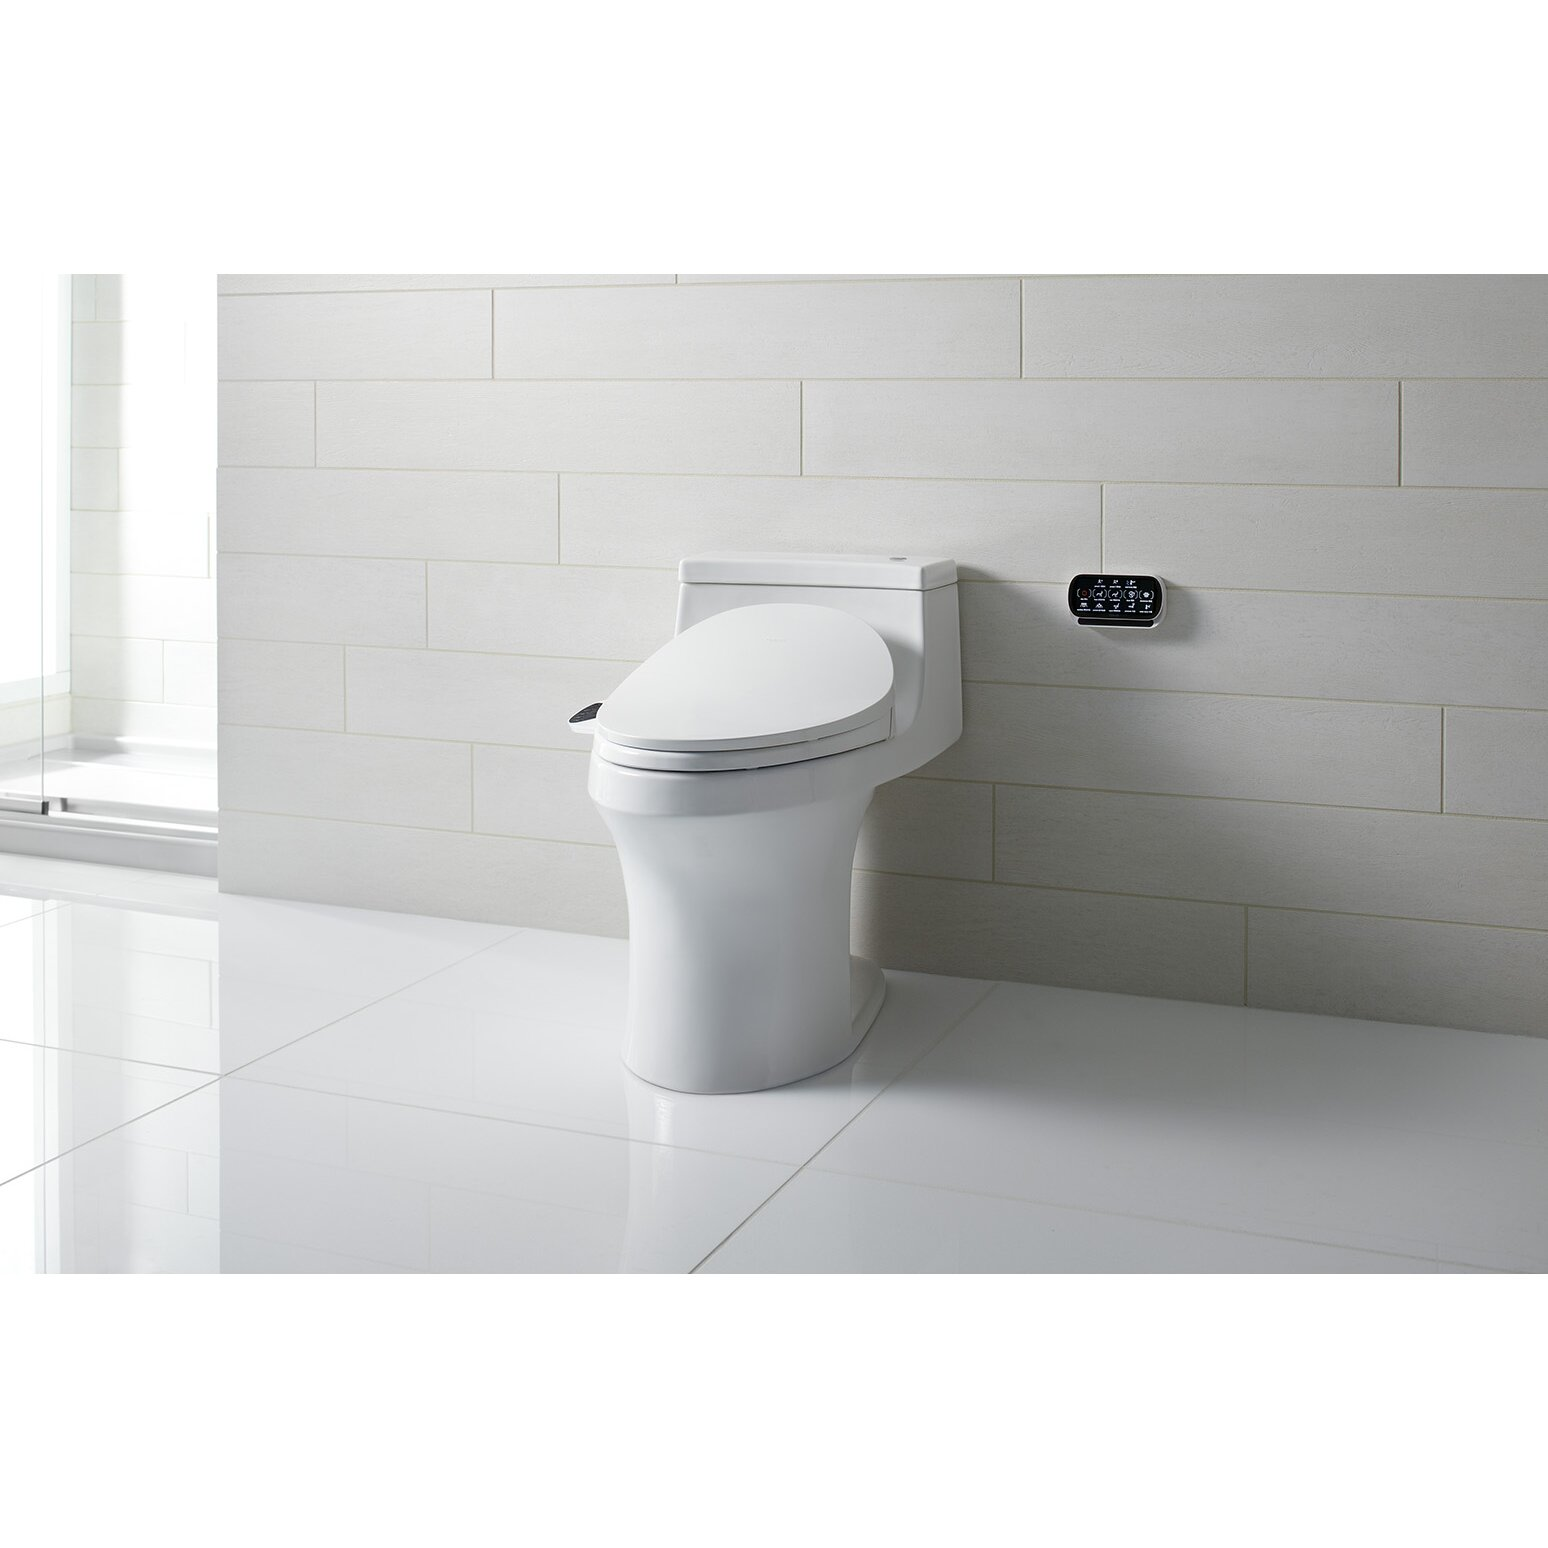 kohler c3 230 c3 230 elongated bidet toilet seat with in line heater and touchscreen remote. Black Bedroom Furniture Sets. Home Design Ideas